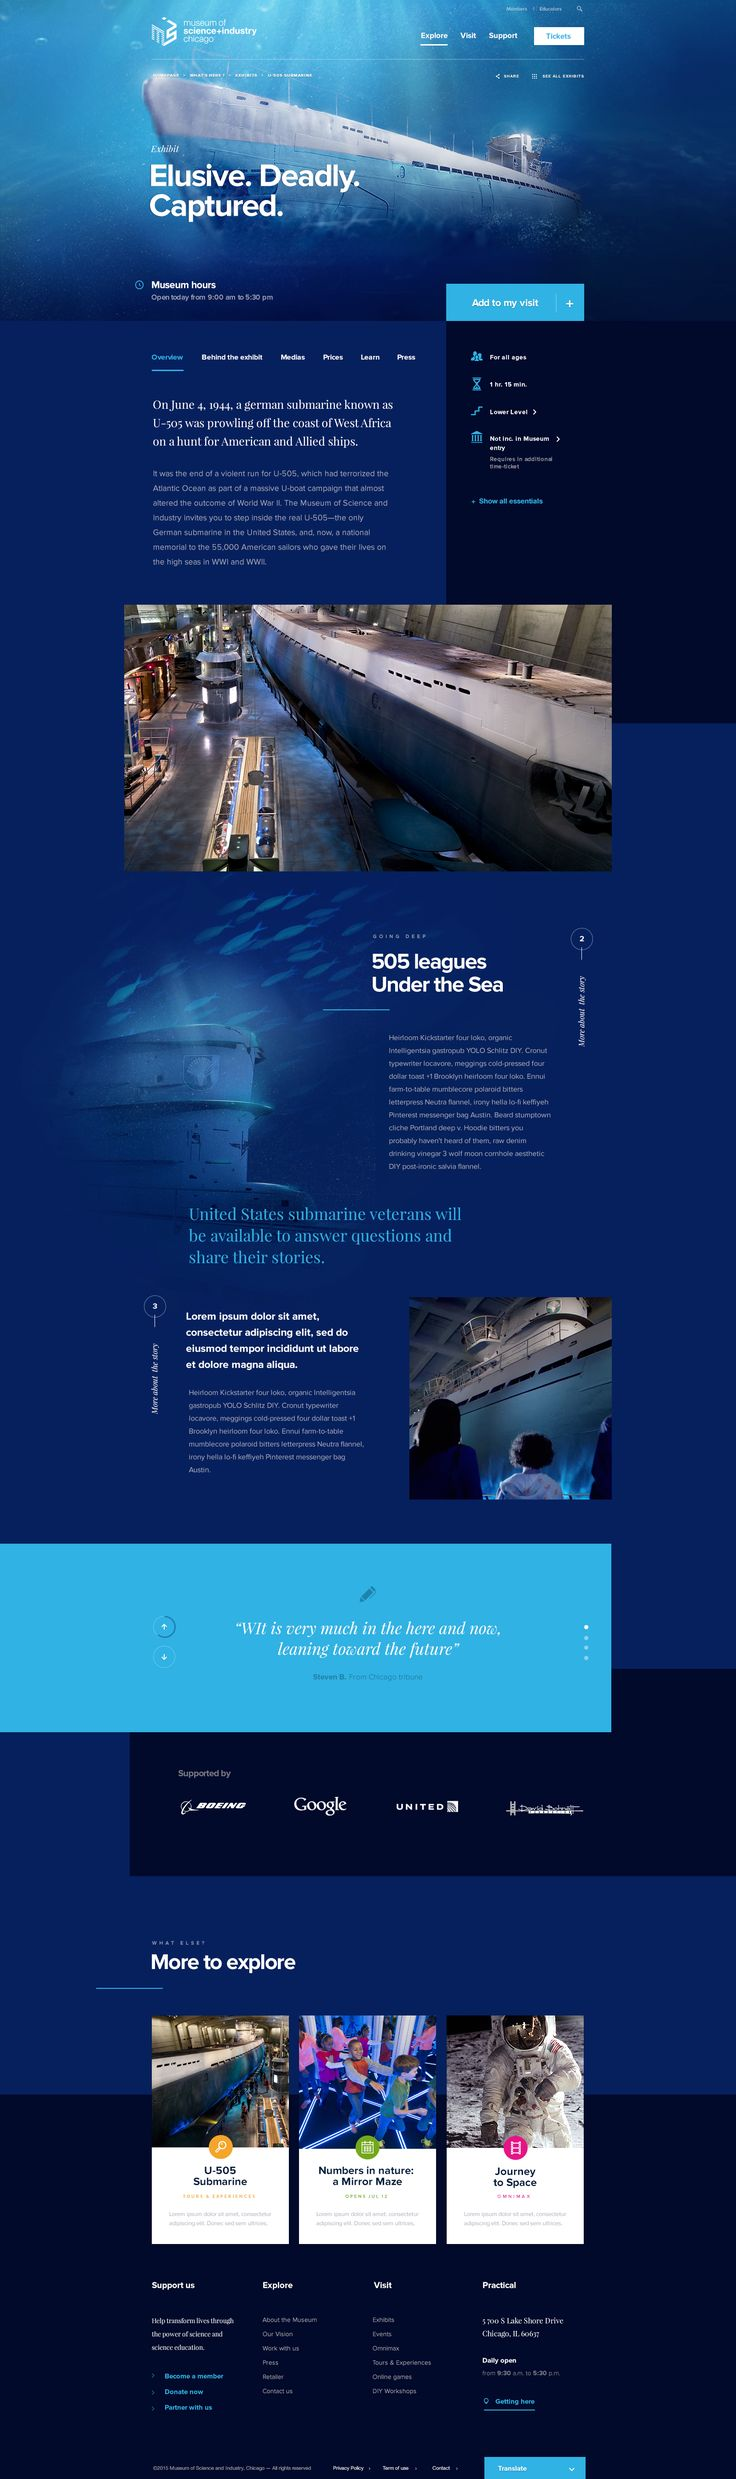 Museum Of Science And Industry Of Chicago - Exhibit page by Dogstudio